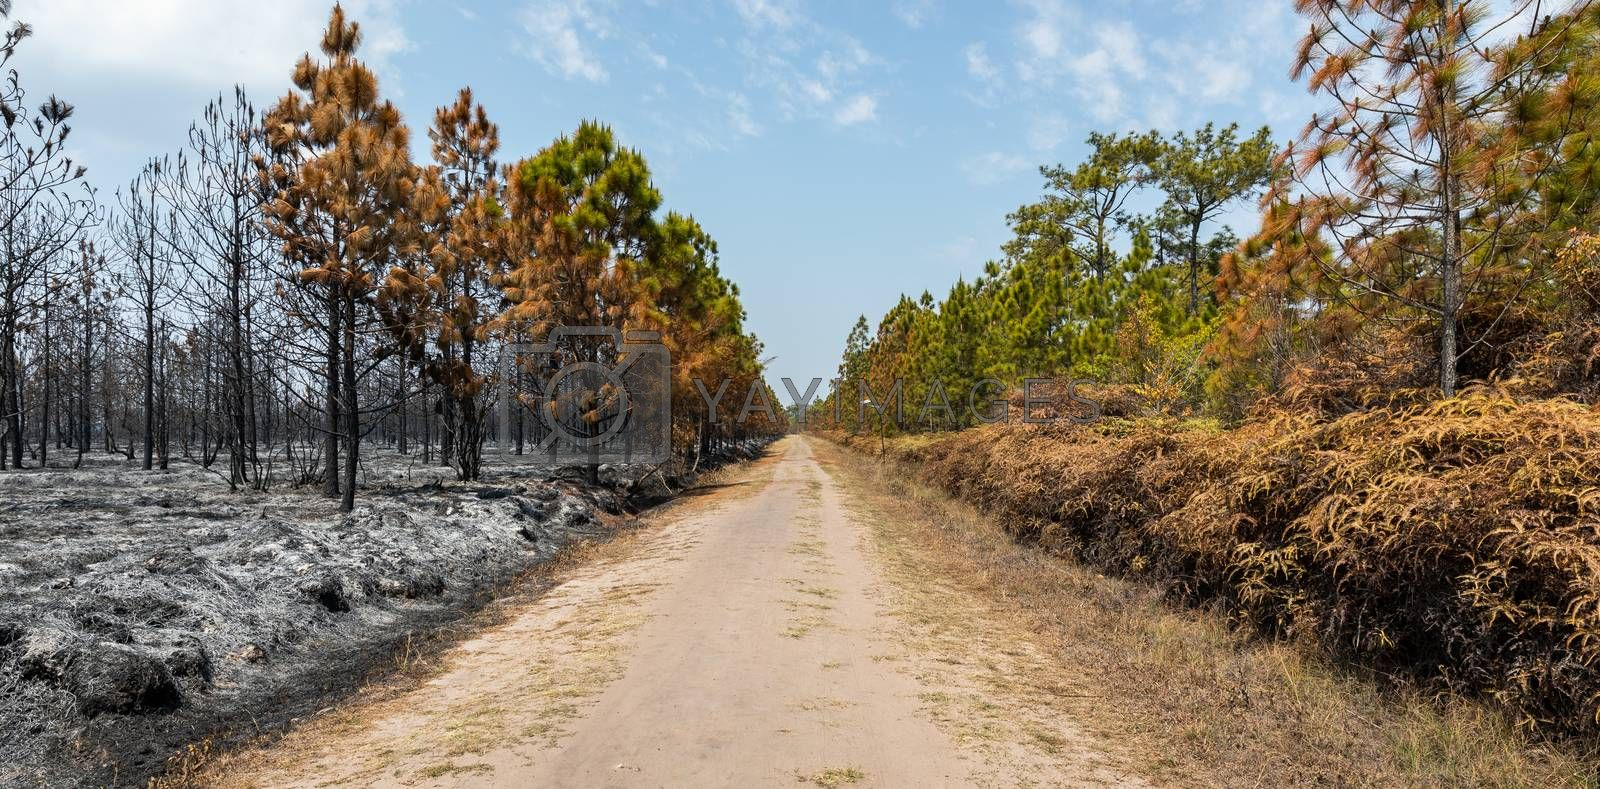 Landscape of walkway in middle of trees and bushes burned by wildfire in tropical rainforest of Phu Kradueng national park, Loei, Thailand.